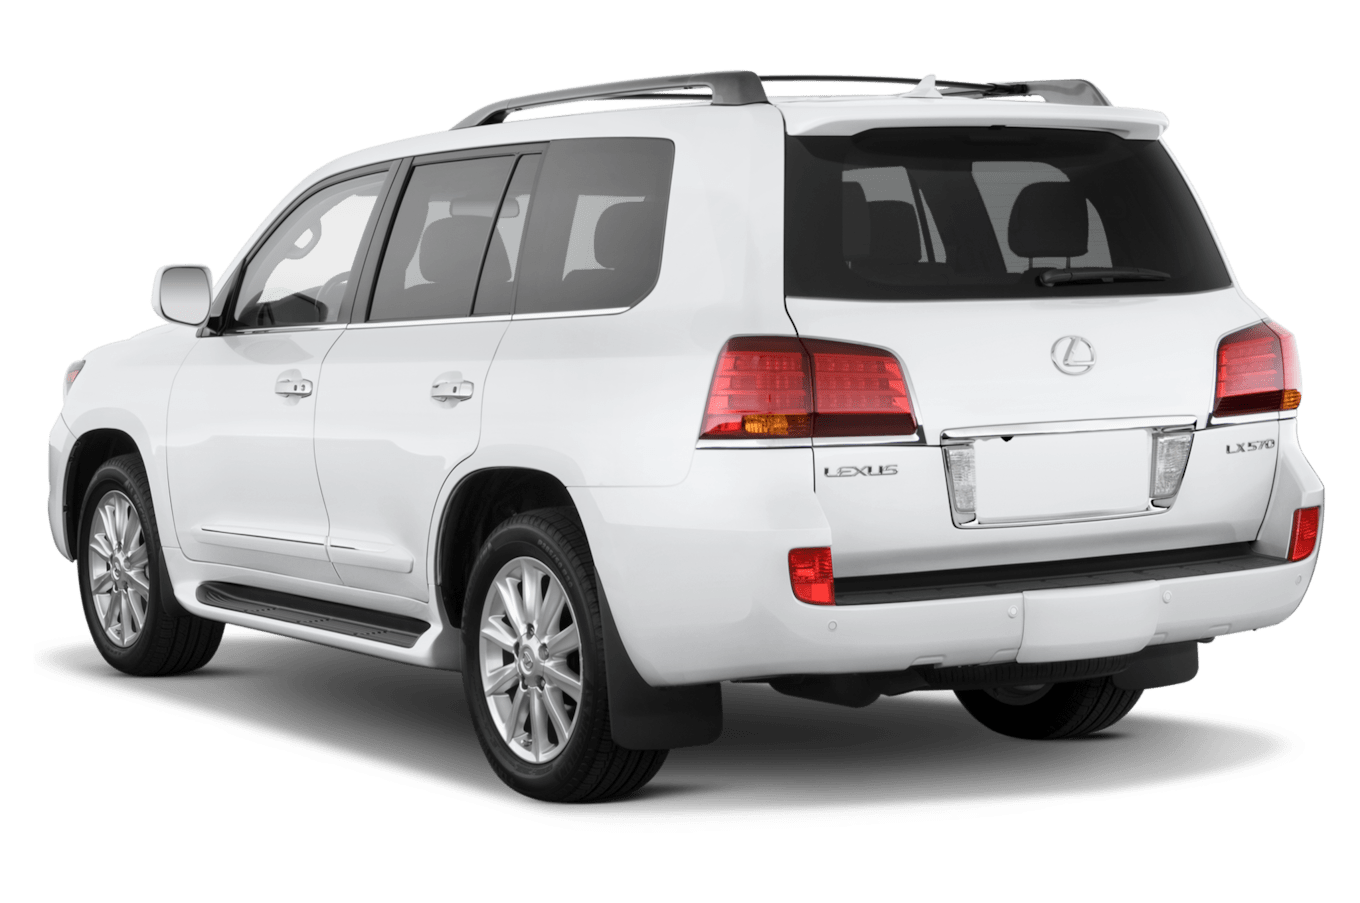 2010 Lexus LX570 Reviews and Rating